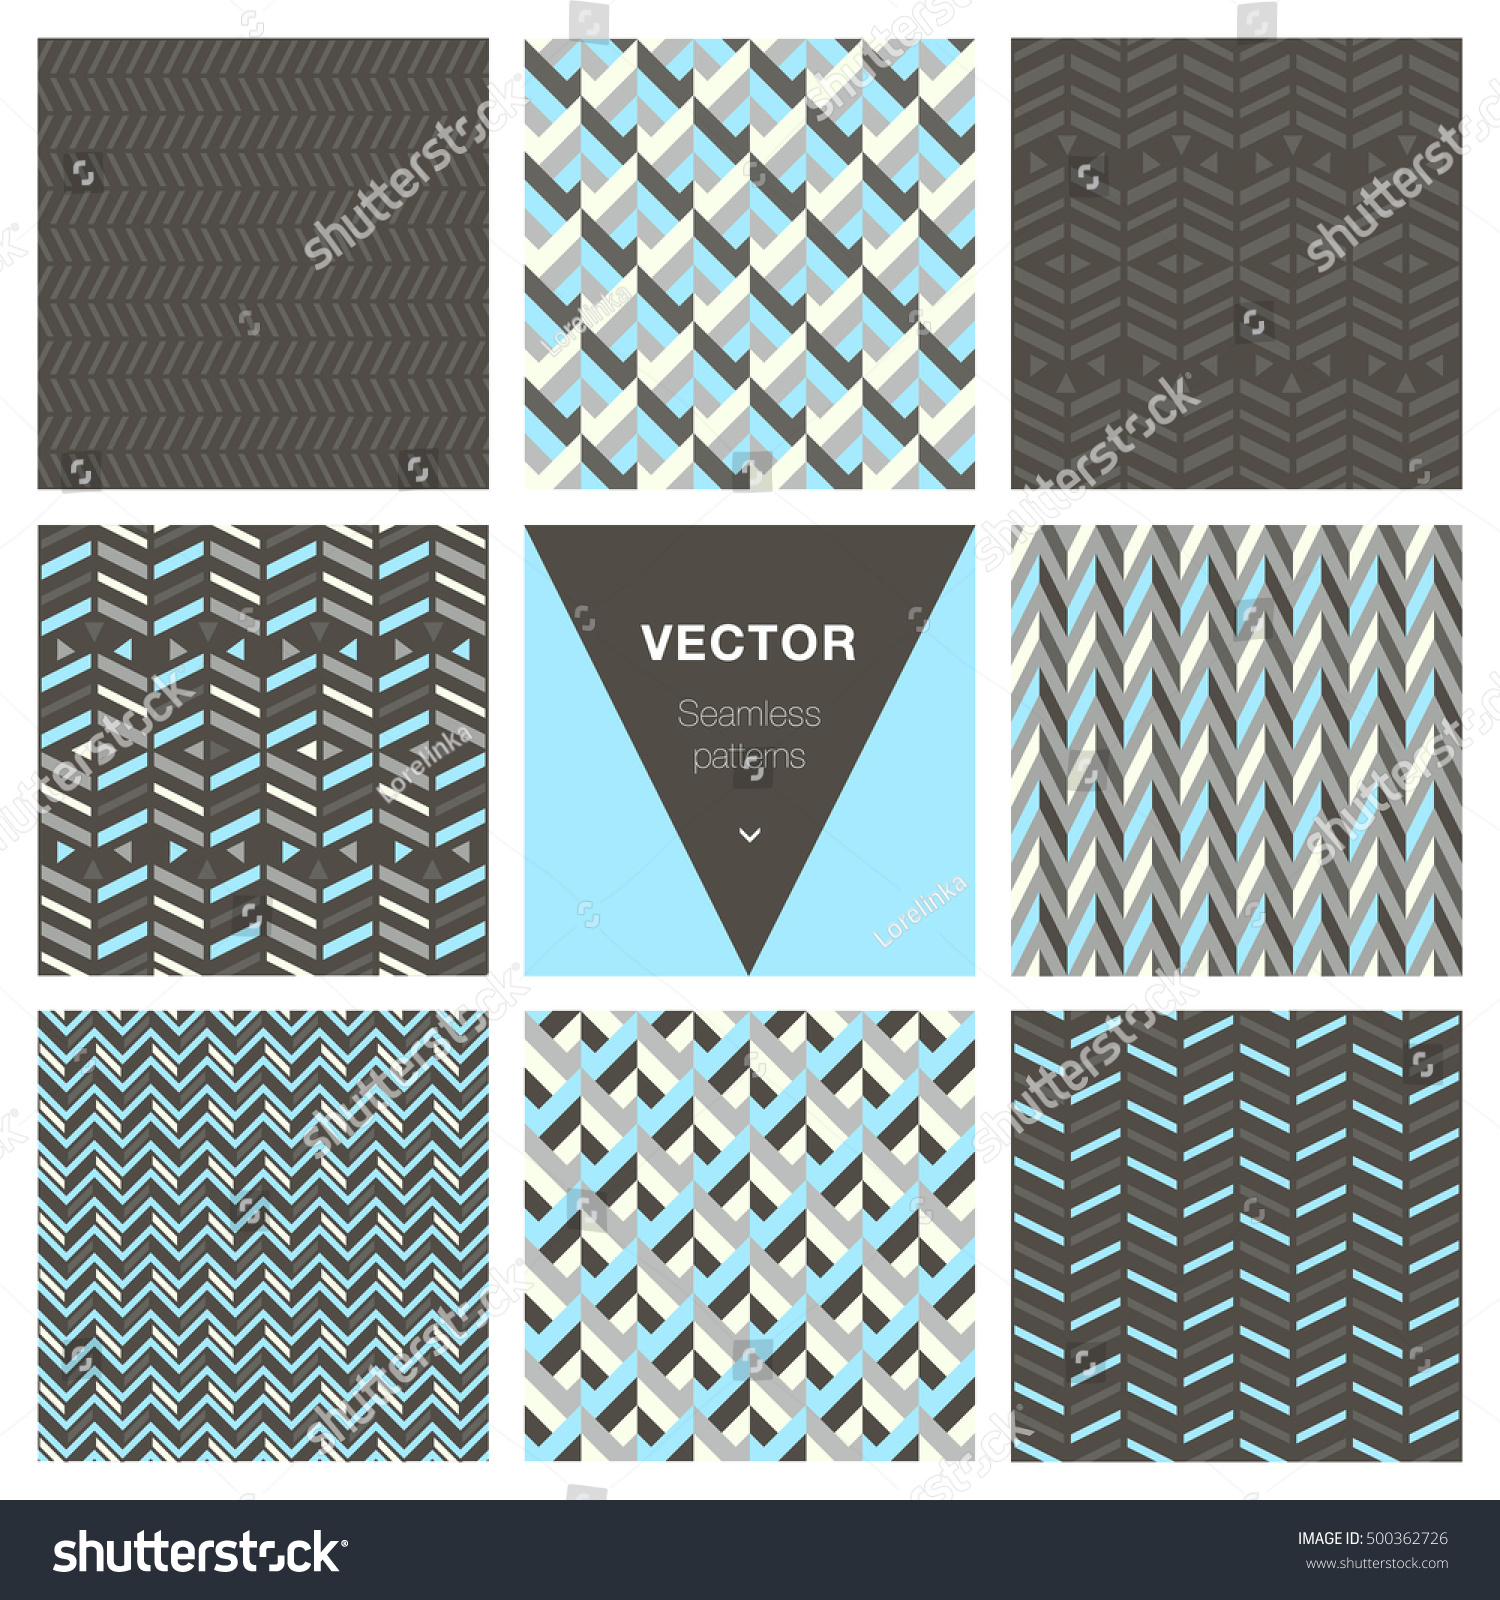 Collection of 8 popular geometric patterns.